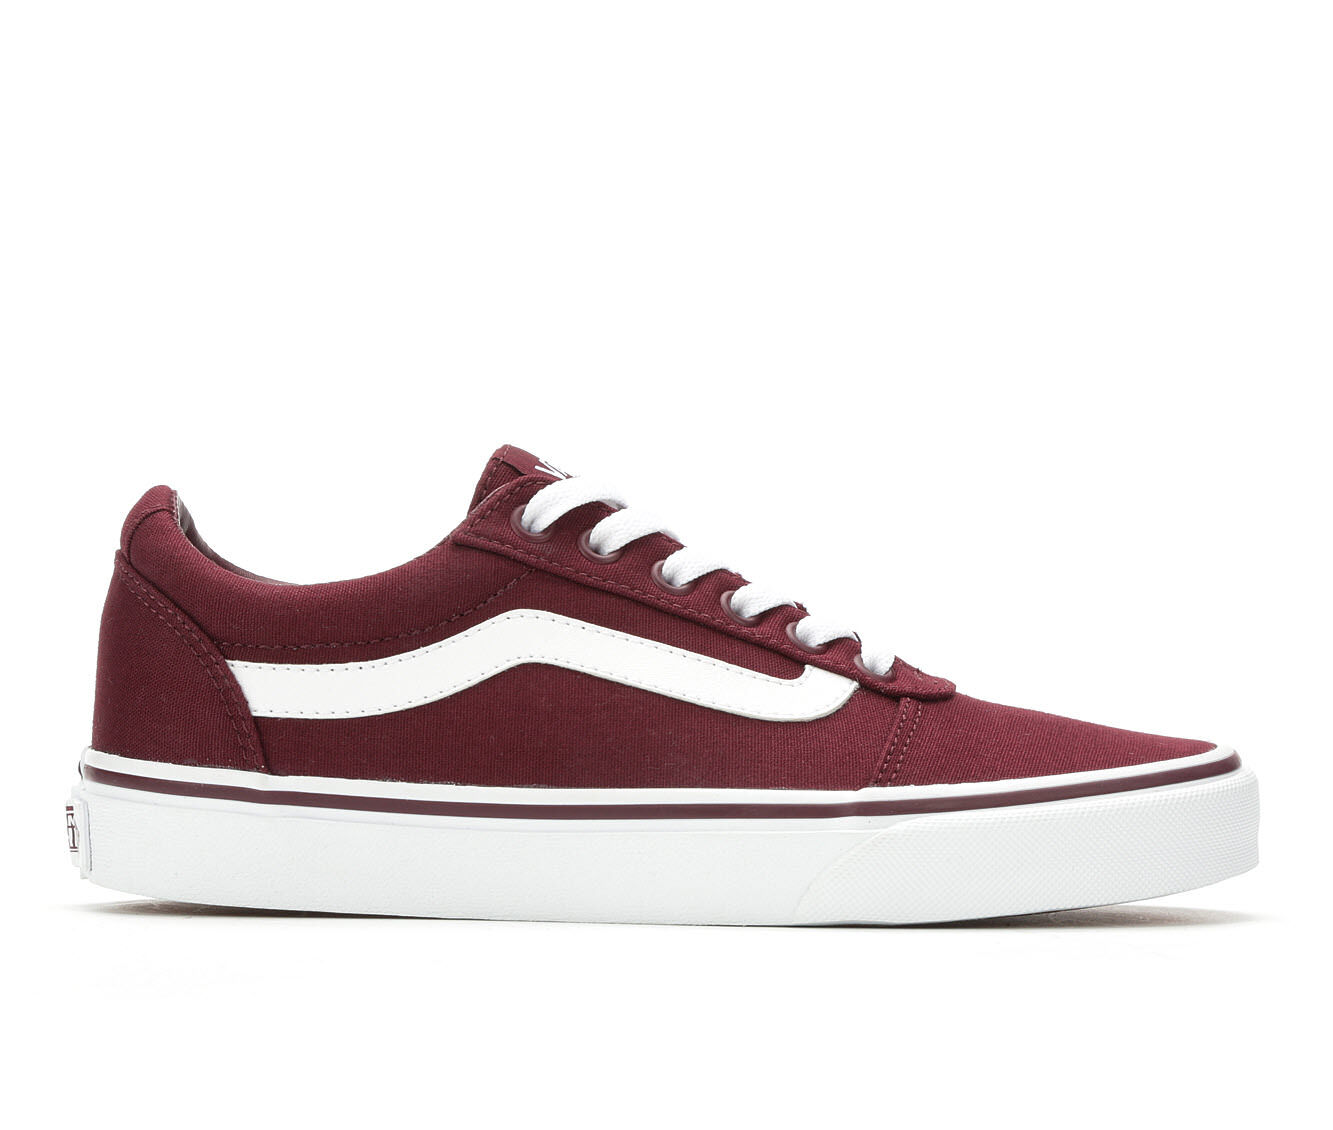 Women's Vans Ward Skate Shoes Burgundy/Wht